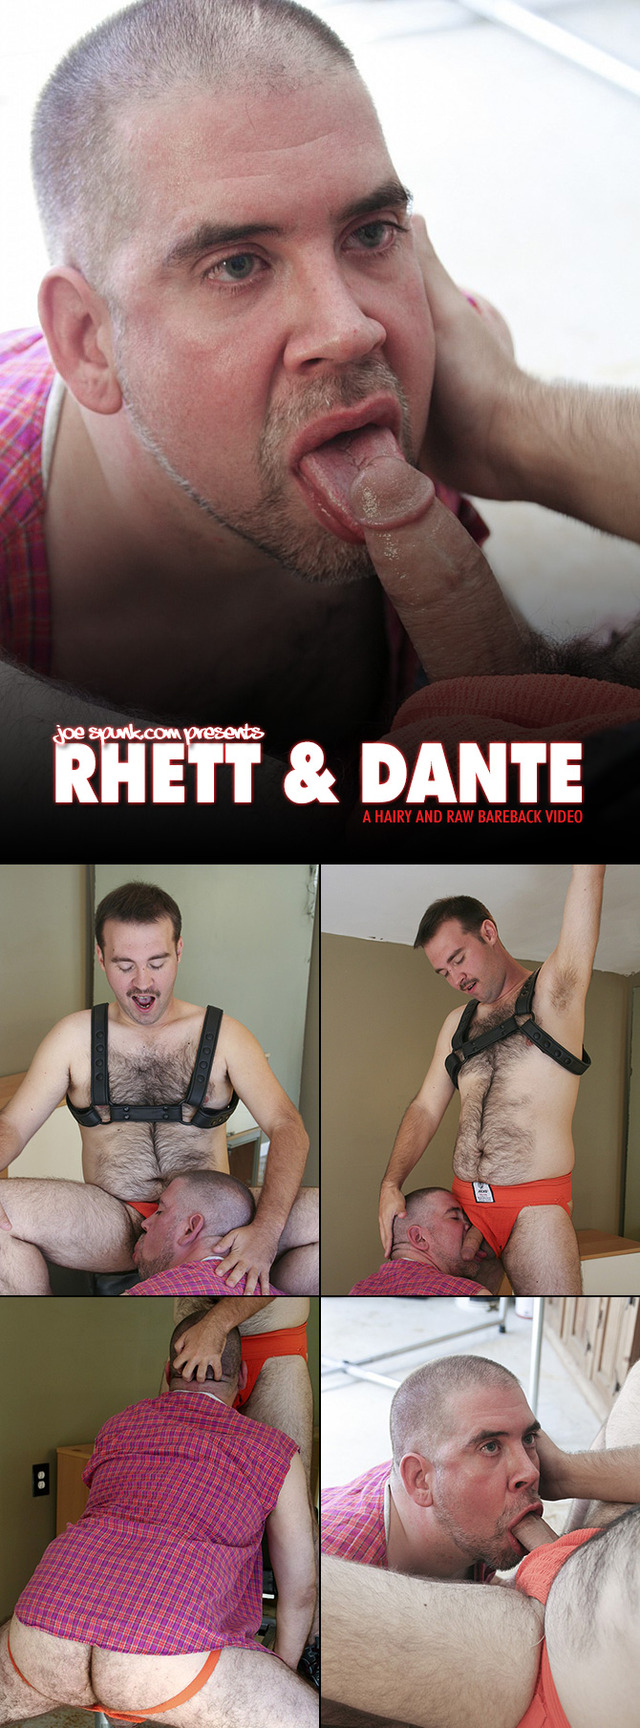 big hairy gay porn bear fucking ass cub collages summers rhett dante hairyandraw polnocy